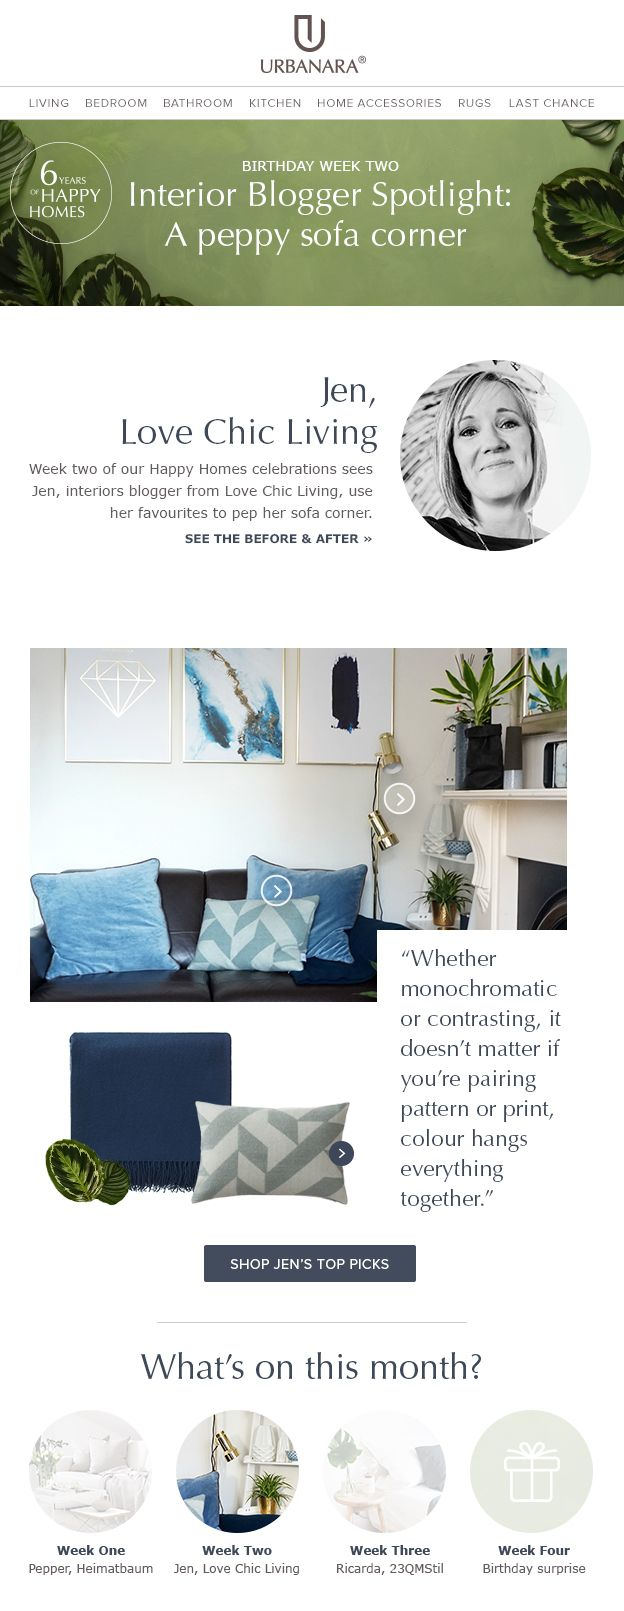 URBANARA newsletter template for blogger inspiration with Love Chic Living and 'get the look' home textiles and decor. Follows us for tips and inspiration for your home decor, interior or fashion newsletters.